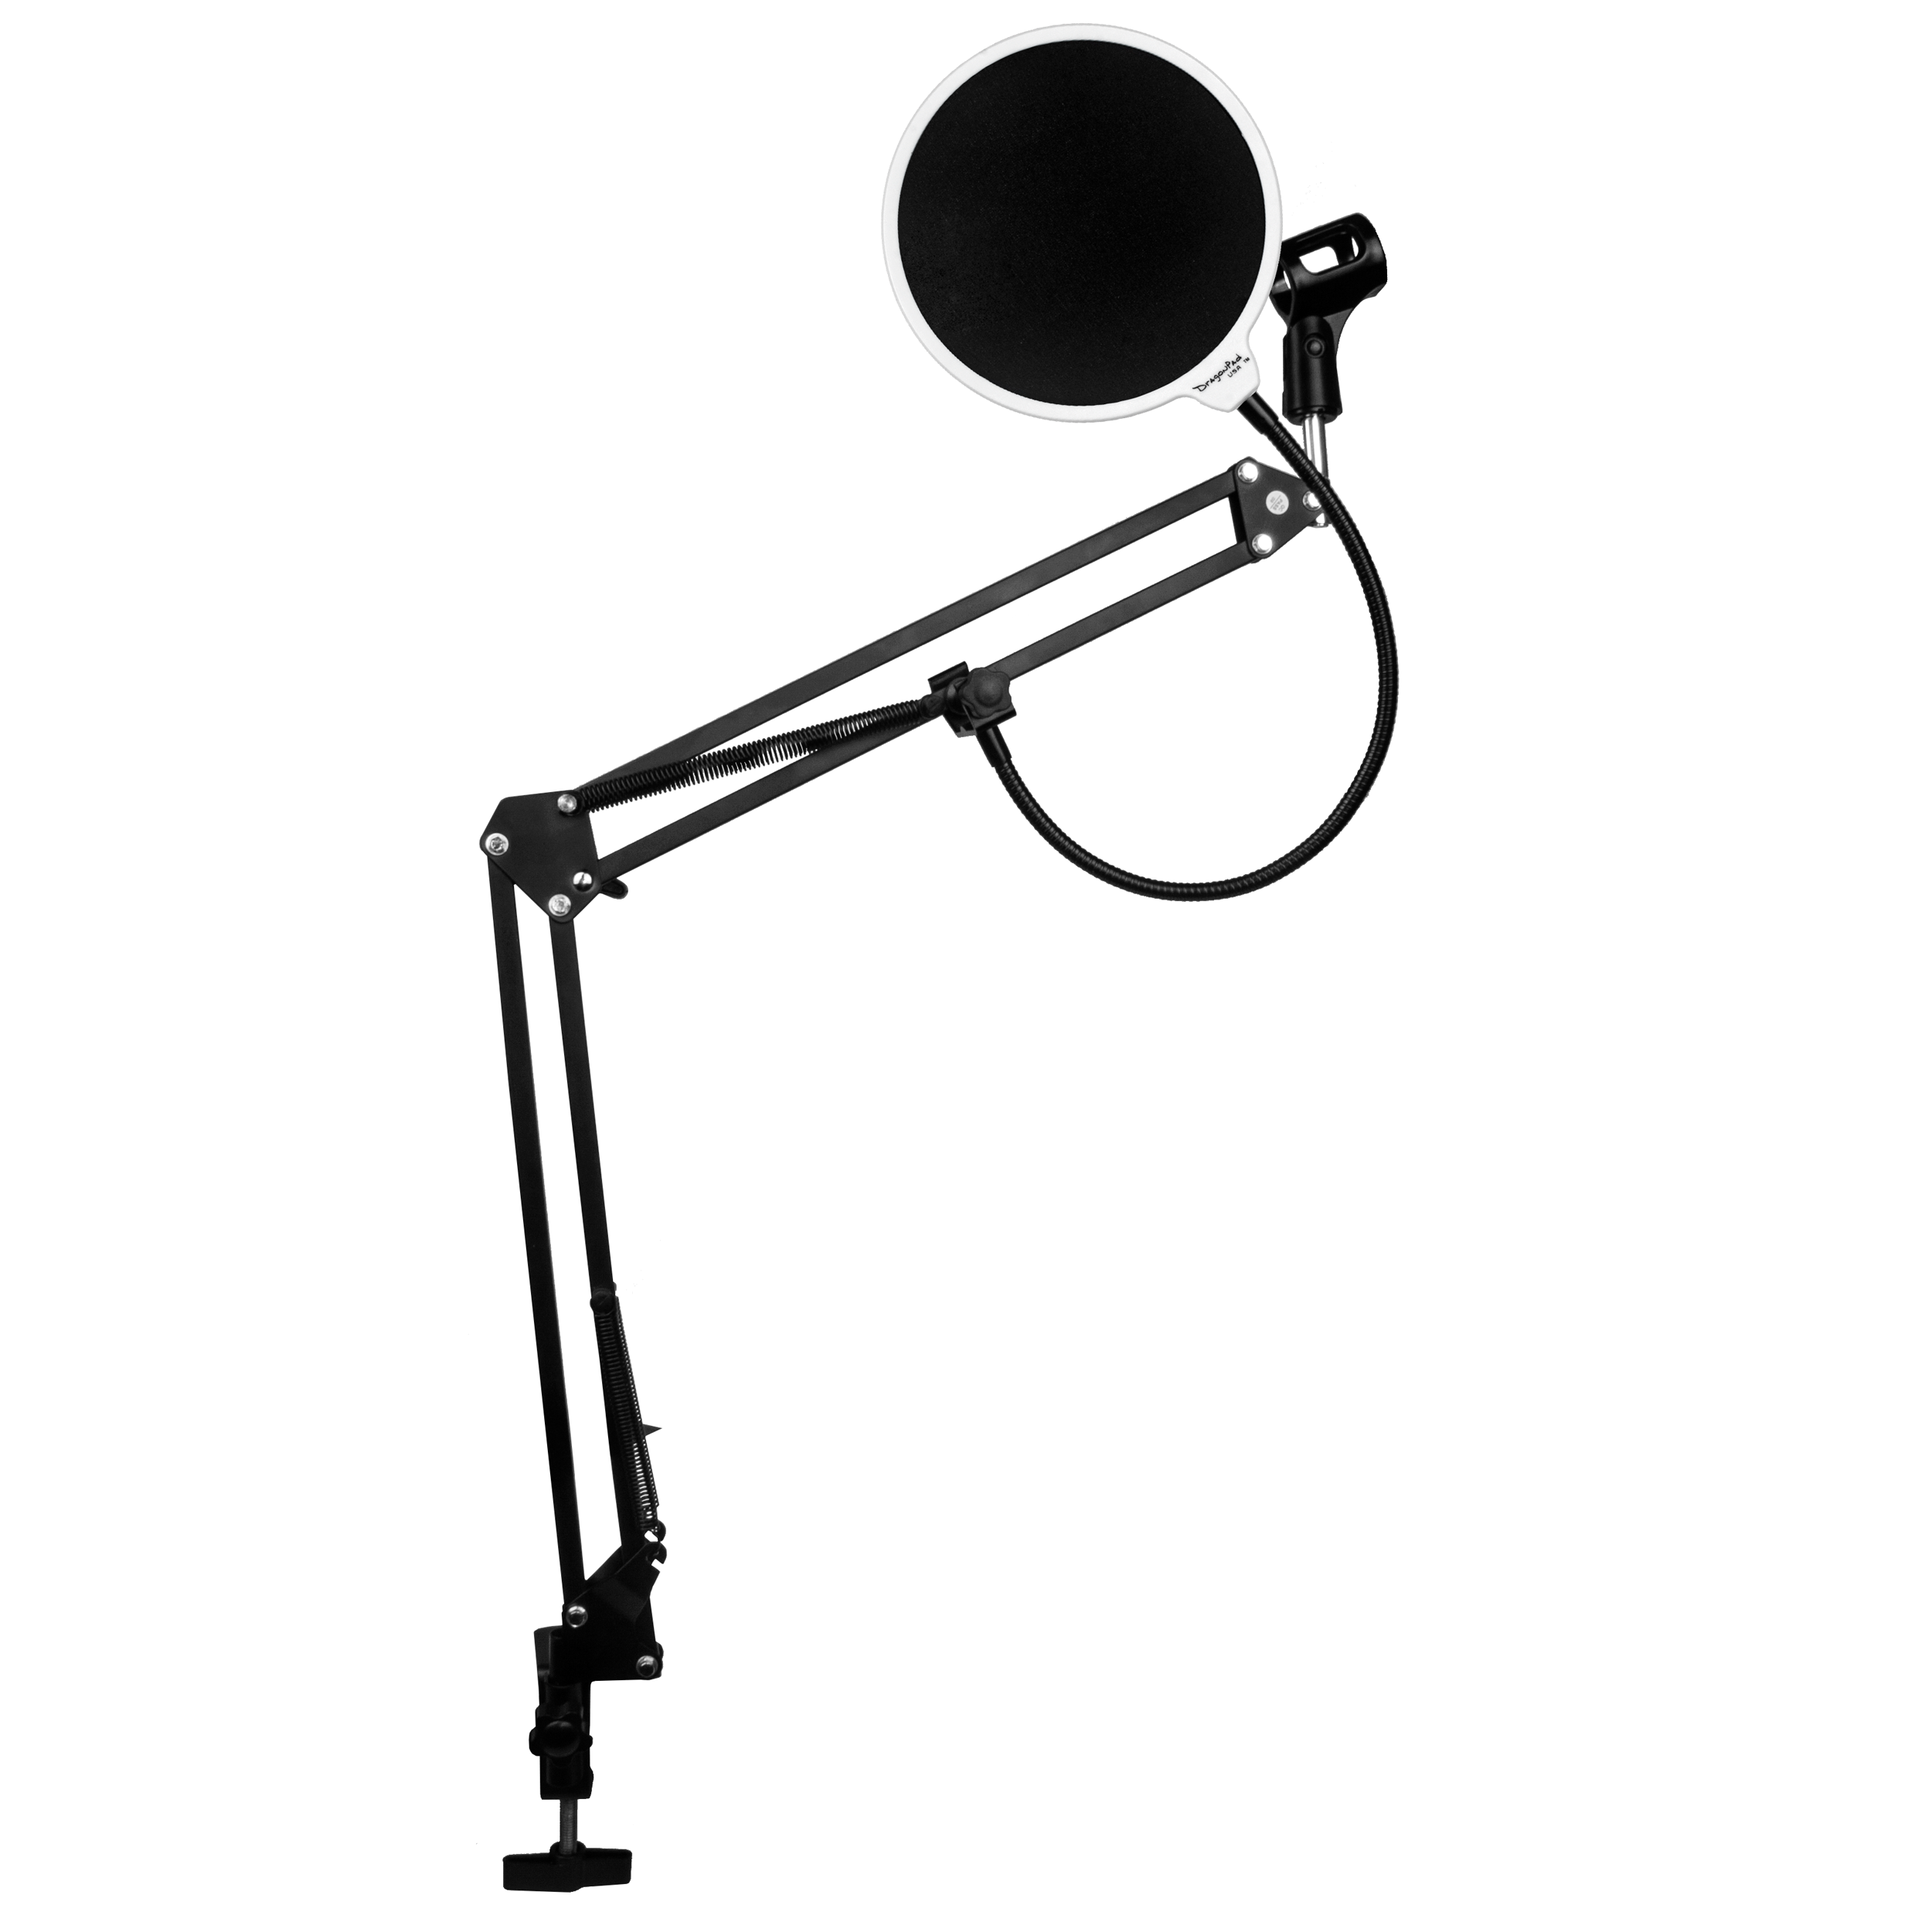 DragonPad USA Microphone Scissor Boom Arm with Desk Mount and Studio Pop Filter - White/Black/W